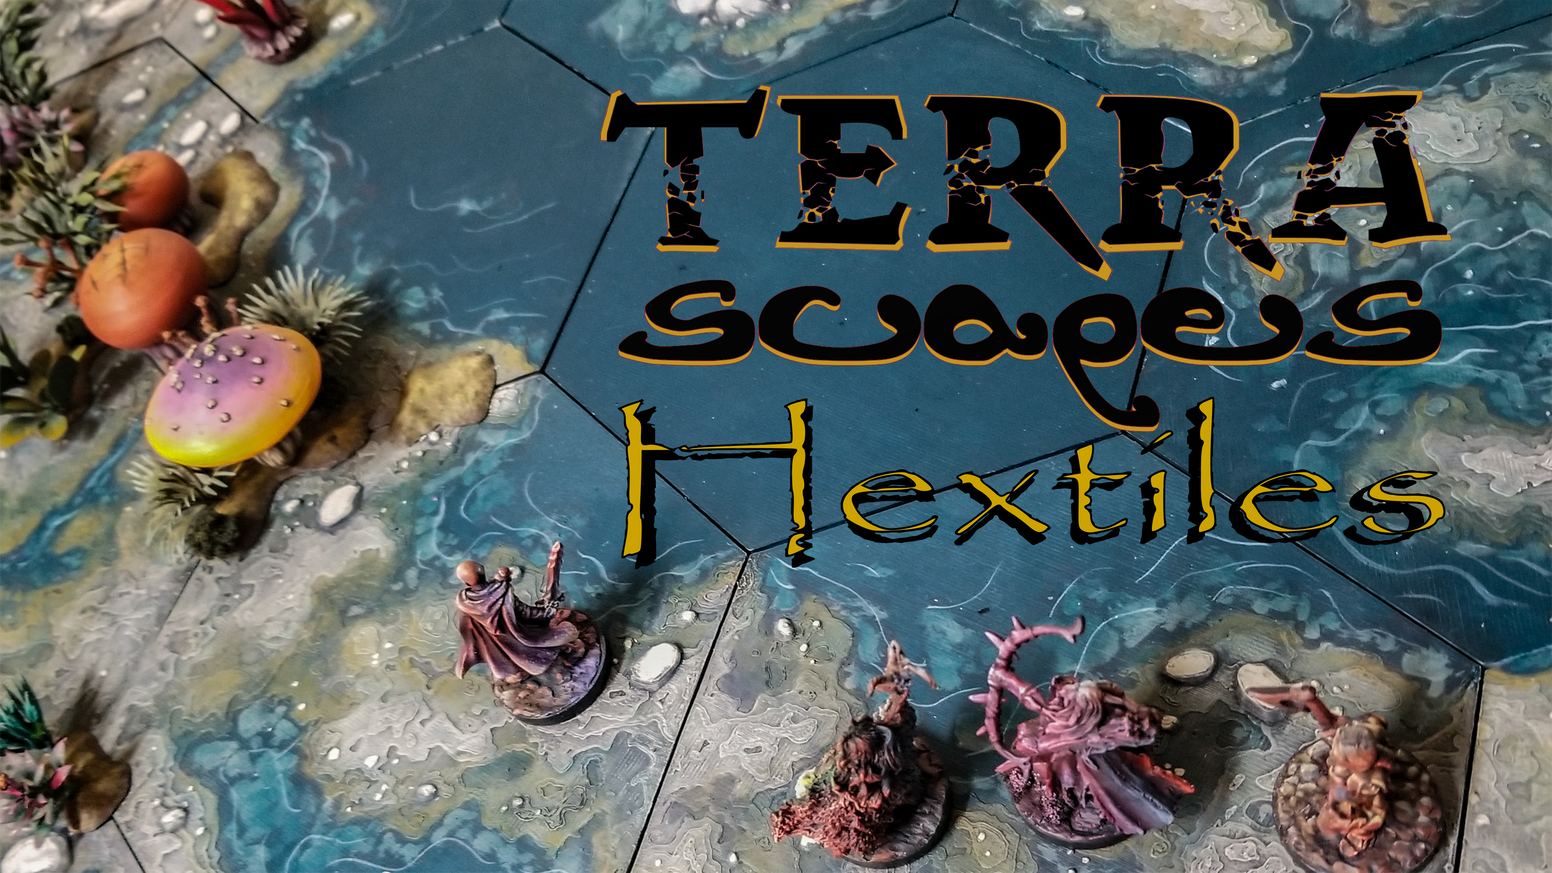 TerraScapes: Hextiles is a 3d-printable modular flat terrain system for tabletop games of any genre!  They are the every terrain!